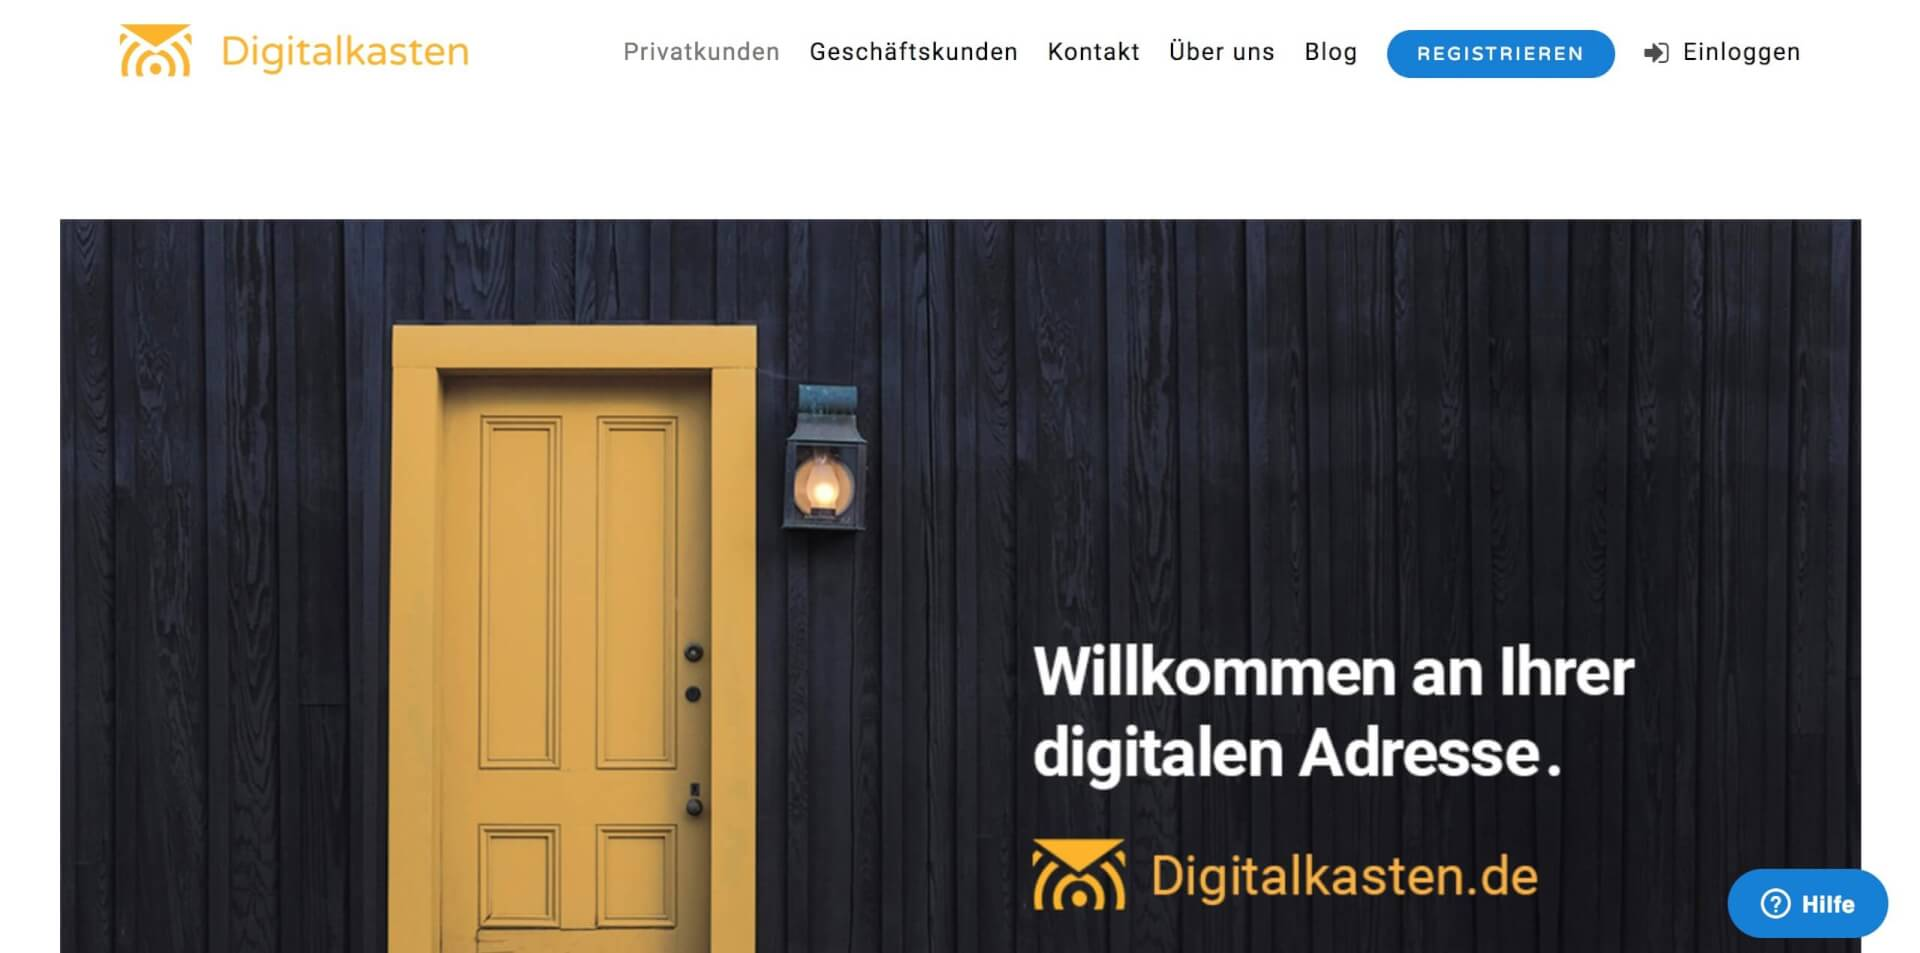 Privatkunden Digitalkasten digitaler Briefkasten 1